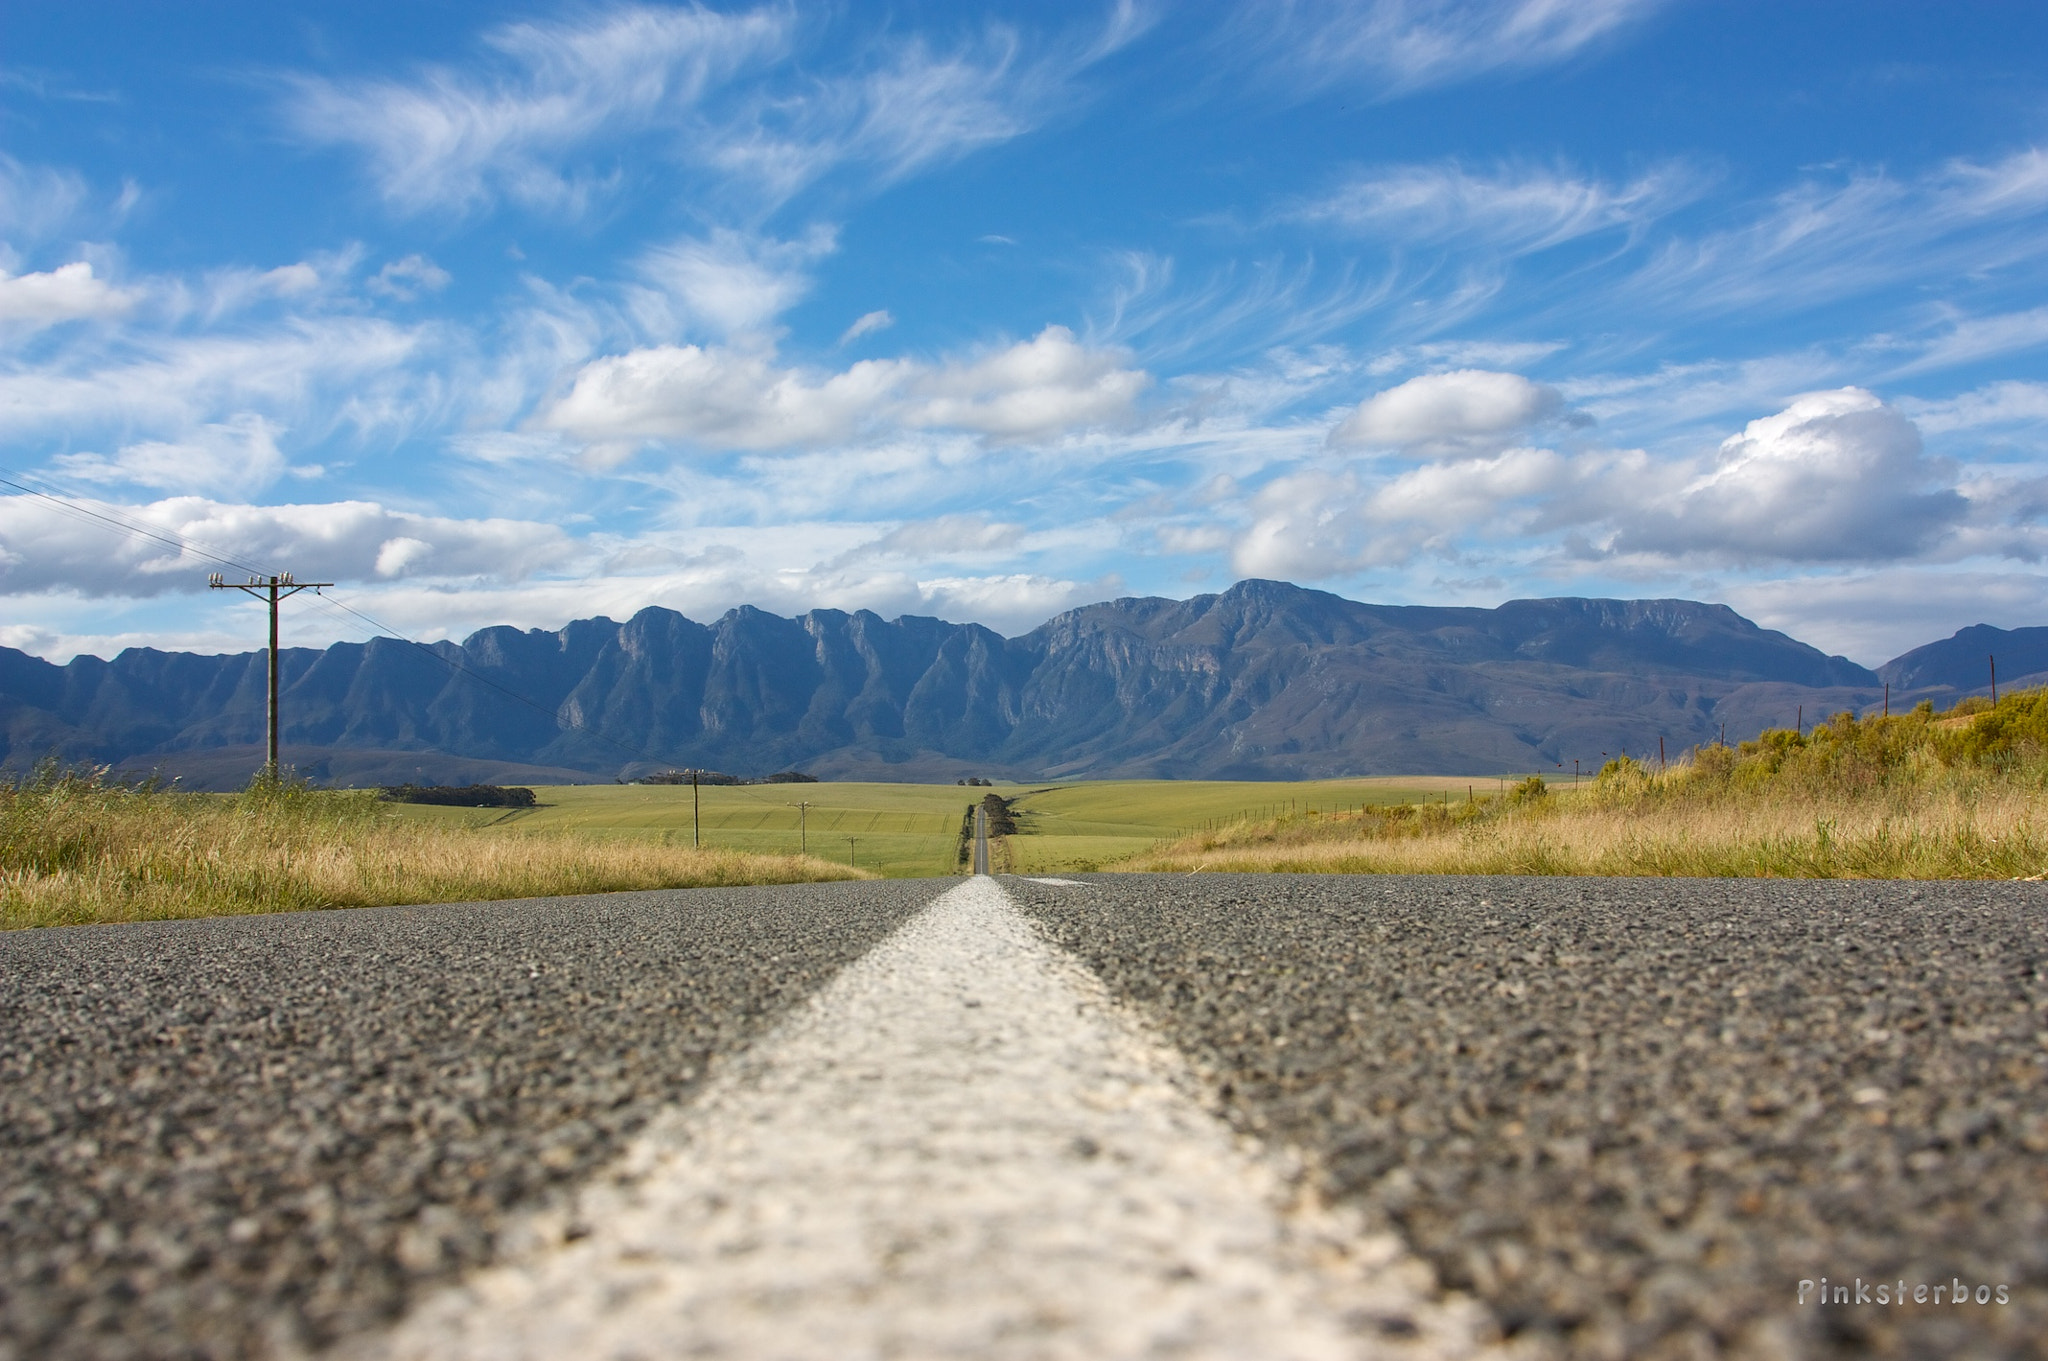 Photograph The Road Ahead by Familie Pinksterbos on 500px